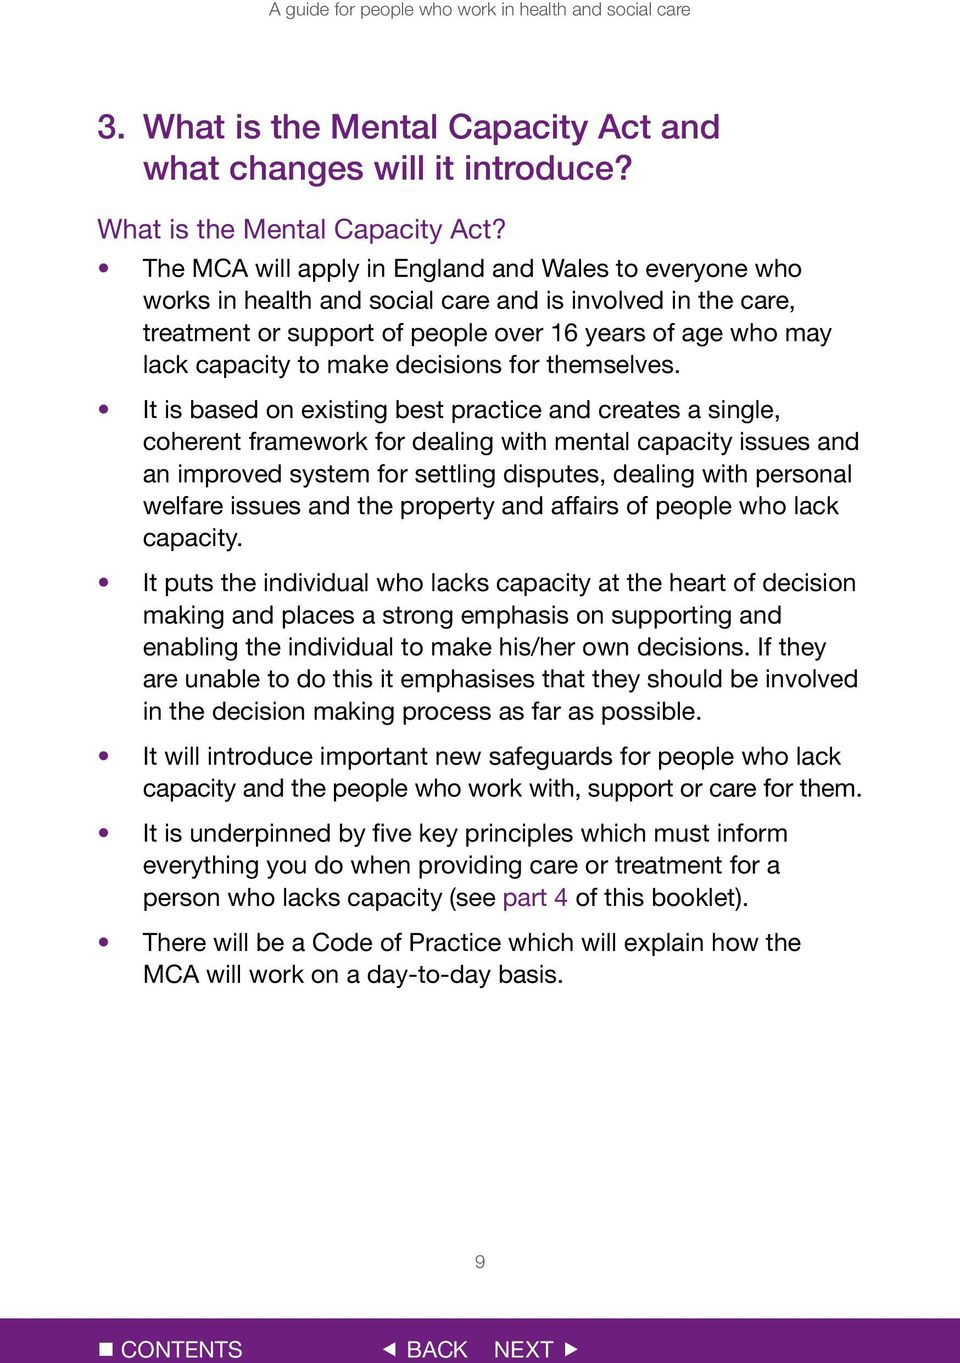 The MCA will apply in England and Wales to everyone who works in health and social care and is involved in the care, treatment or support of people over 16 years of age who may lack capacity to make